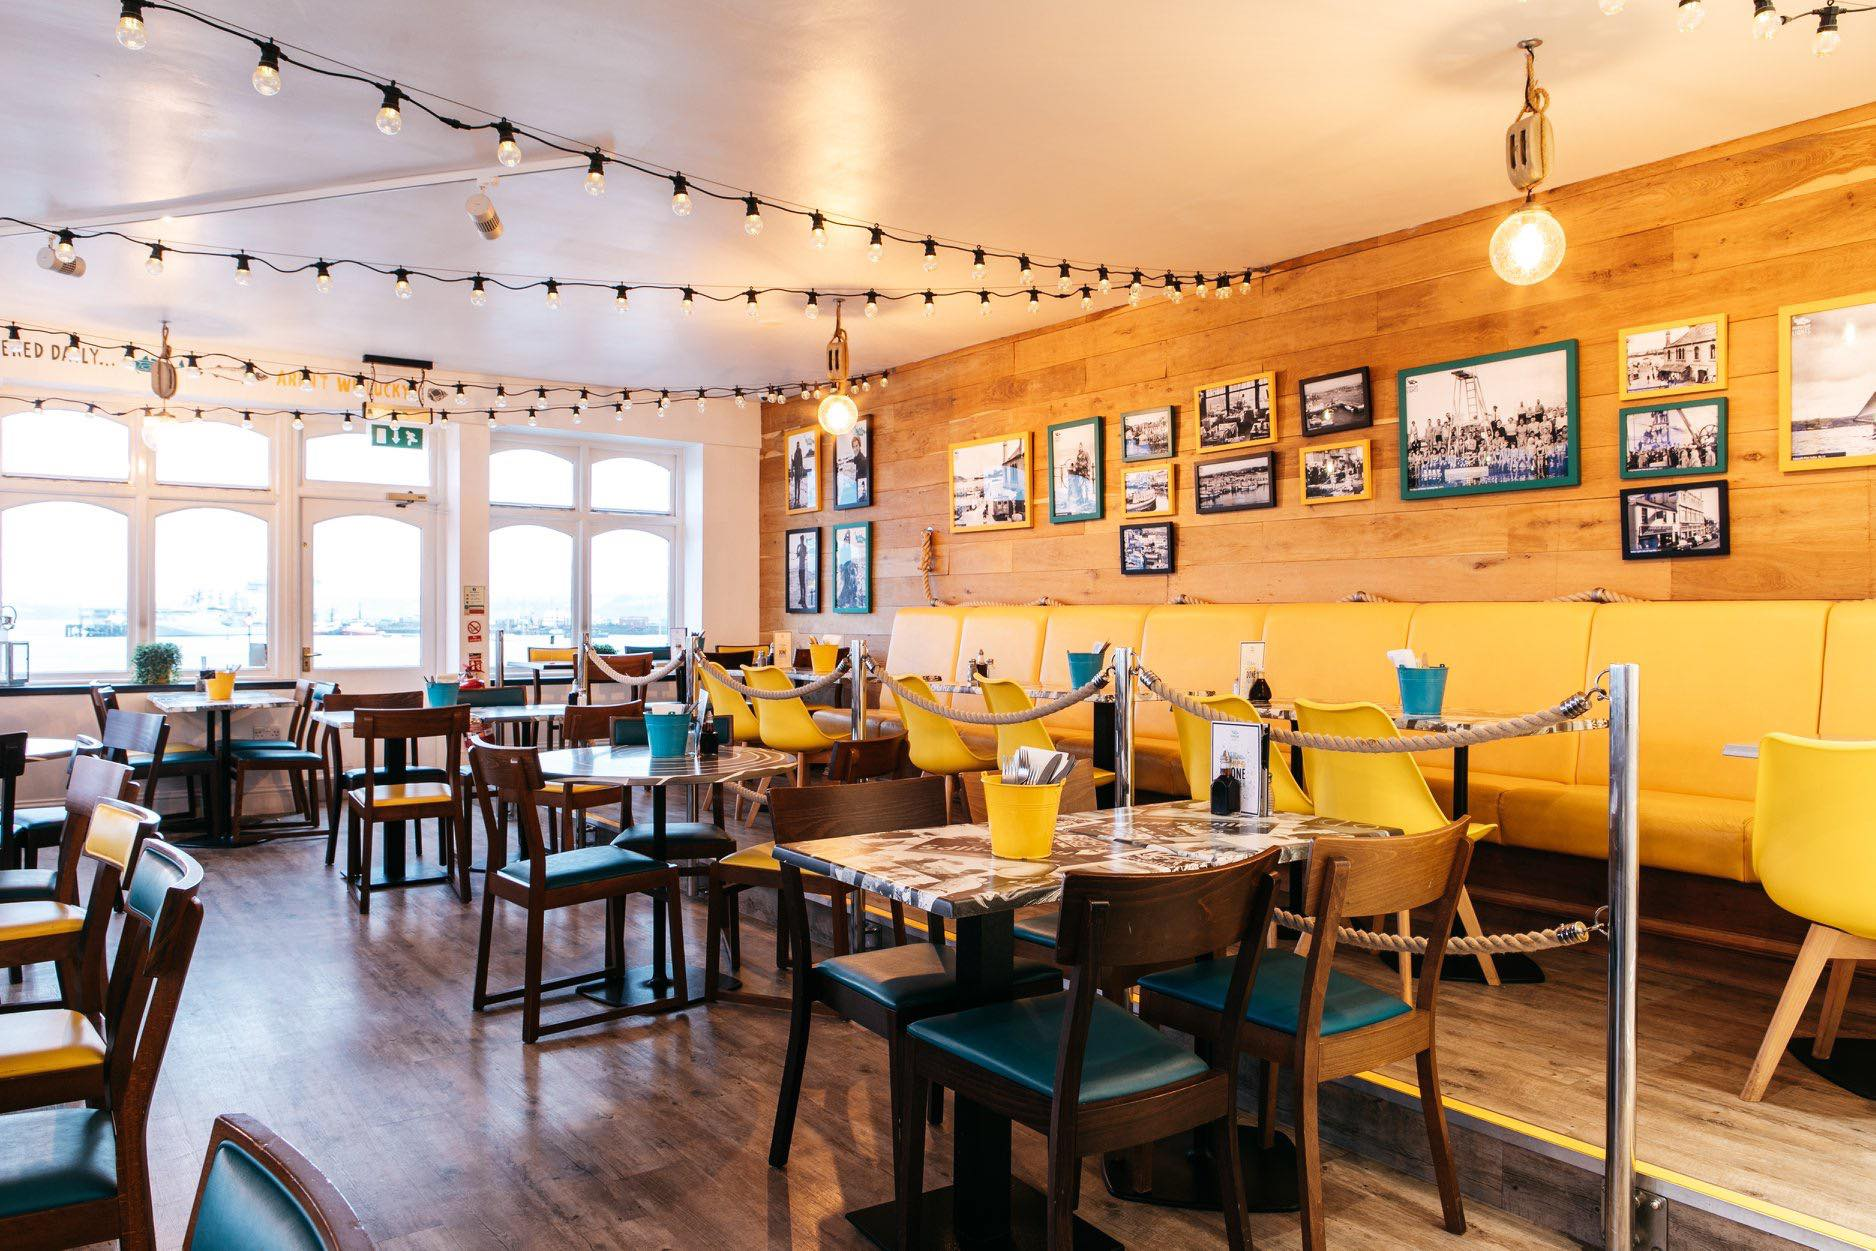 interior-of-fancy-fish-and-chip-shop-with-yellow-and-teal-tables-and-chairs-harbour-lights-places-to-eat-in-falmouth